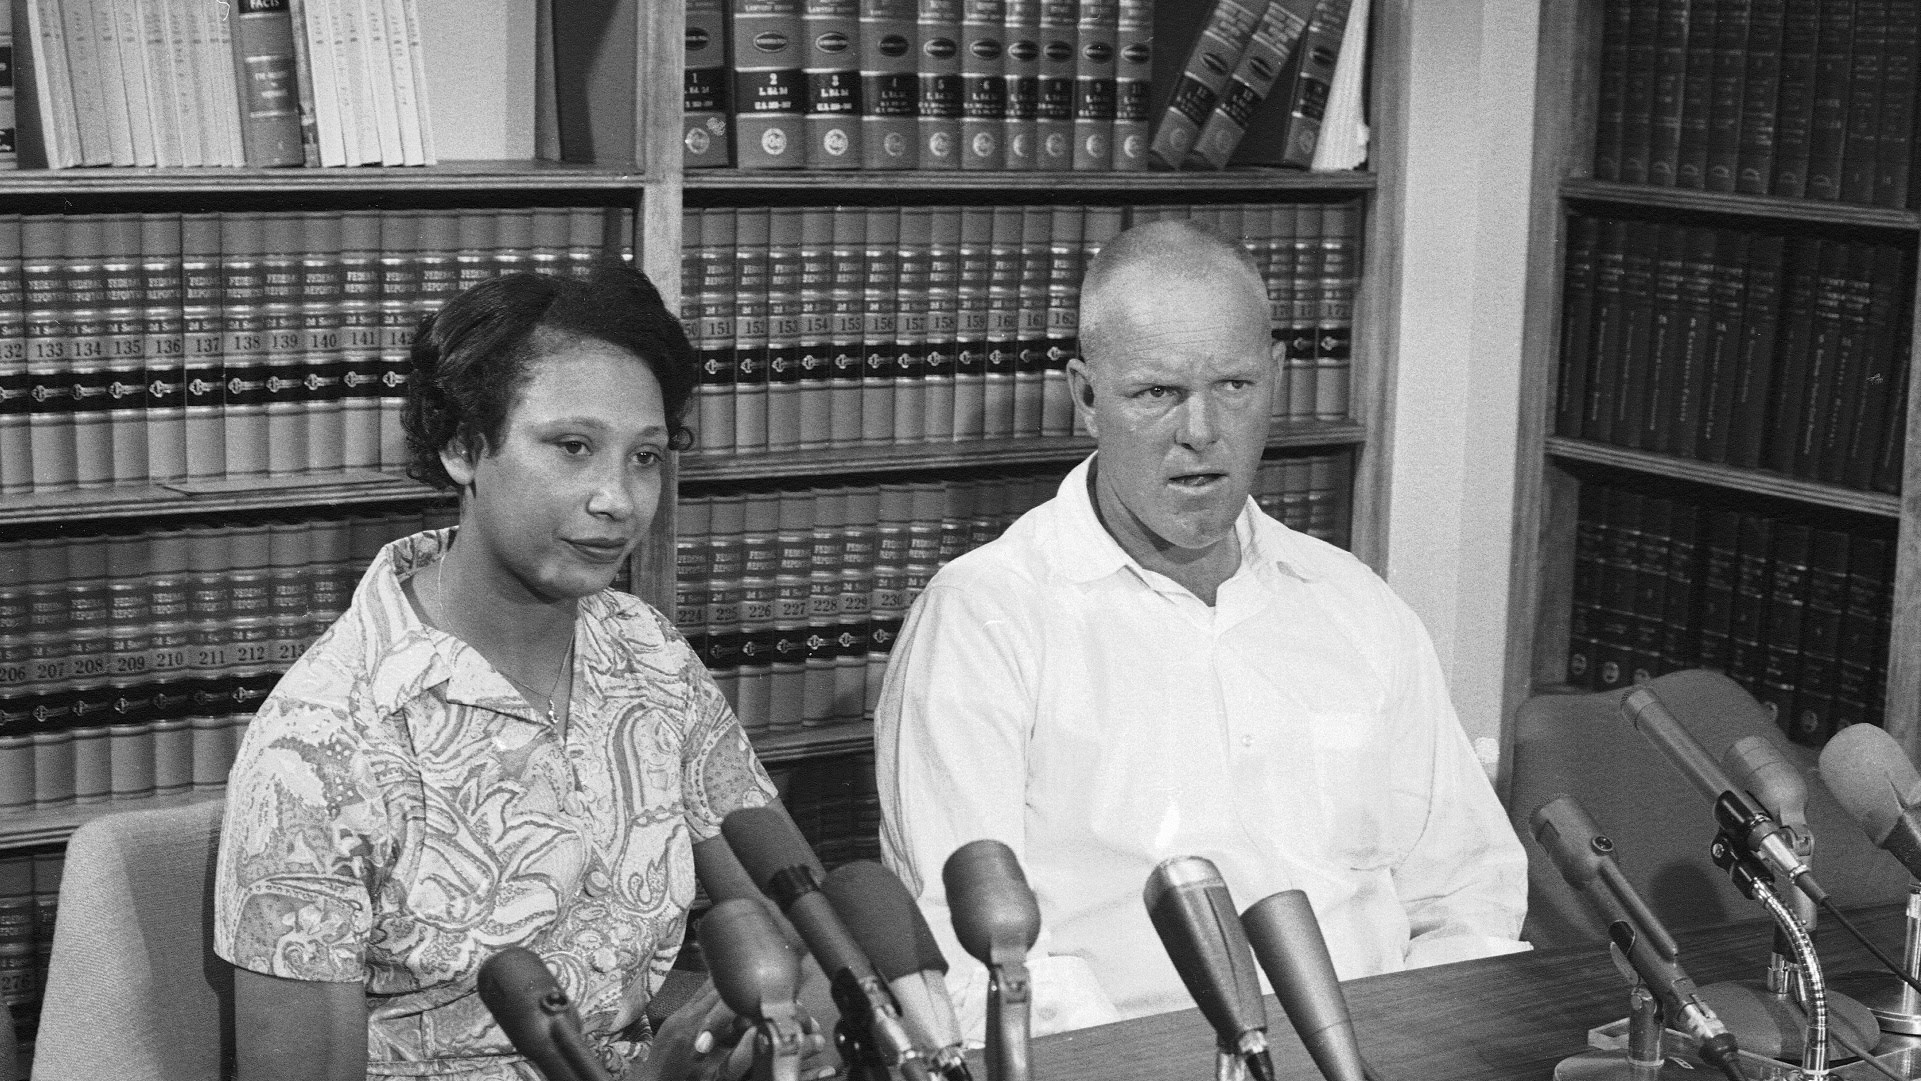 1967 interracial law marriage overturned can discussed